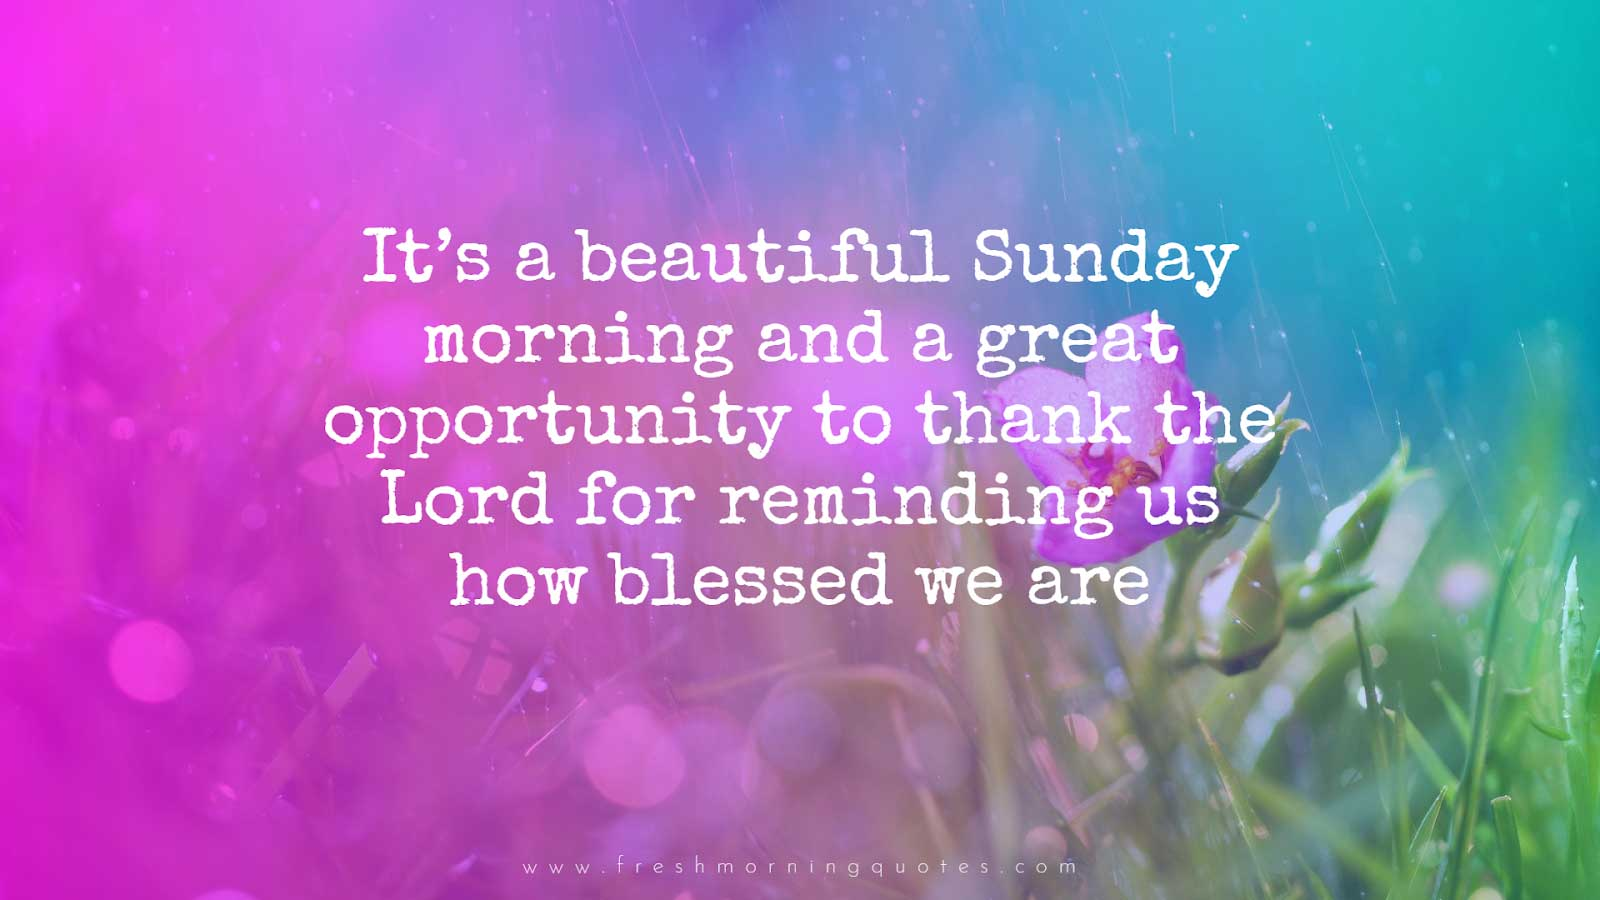 ITS A BEAUTIFUL SUNDAY - SUNDAY QUOTES IMAGES